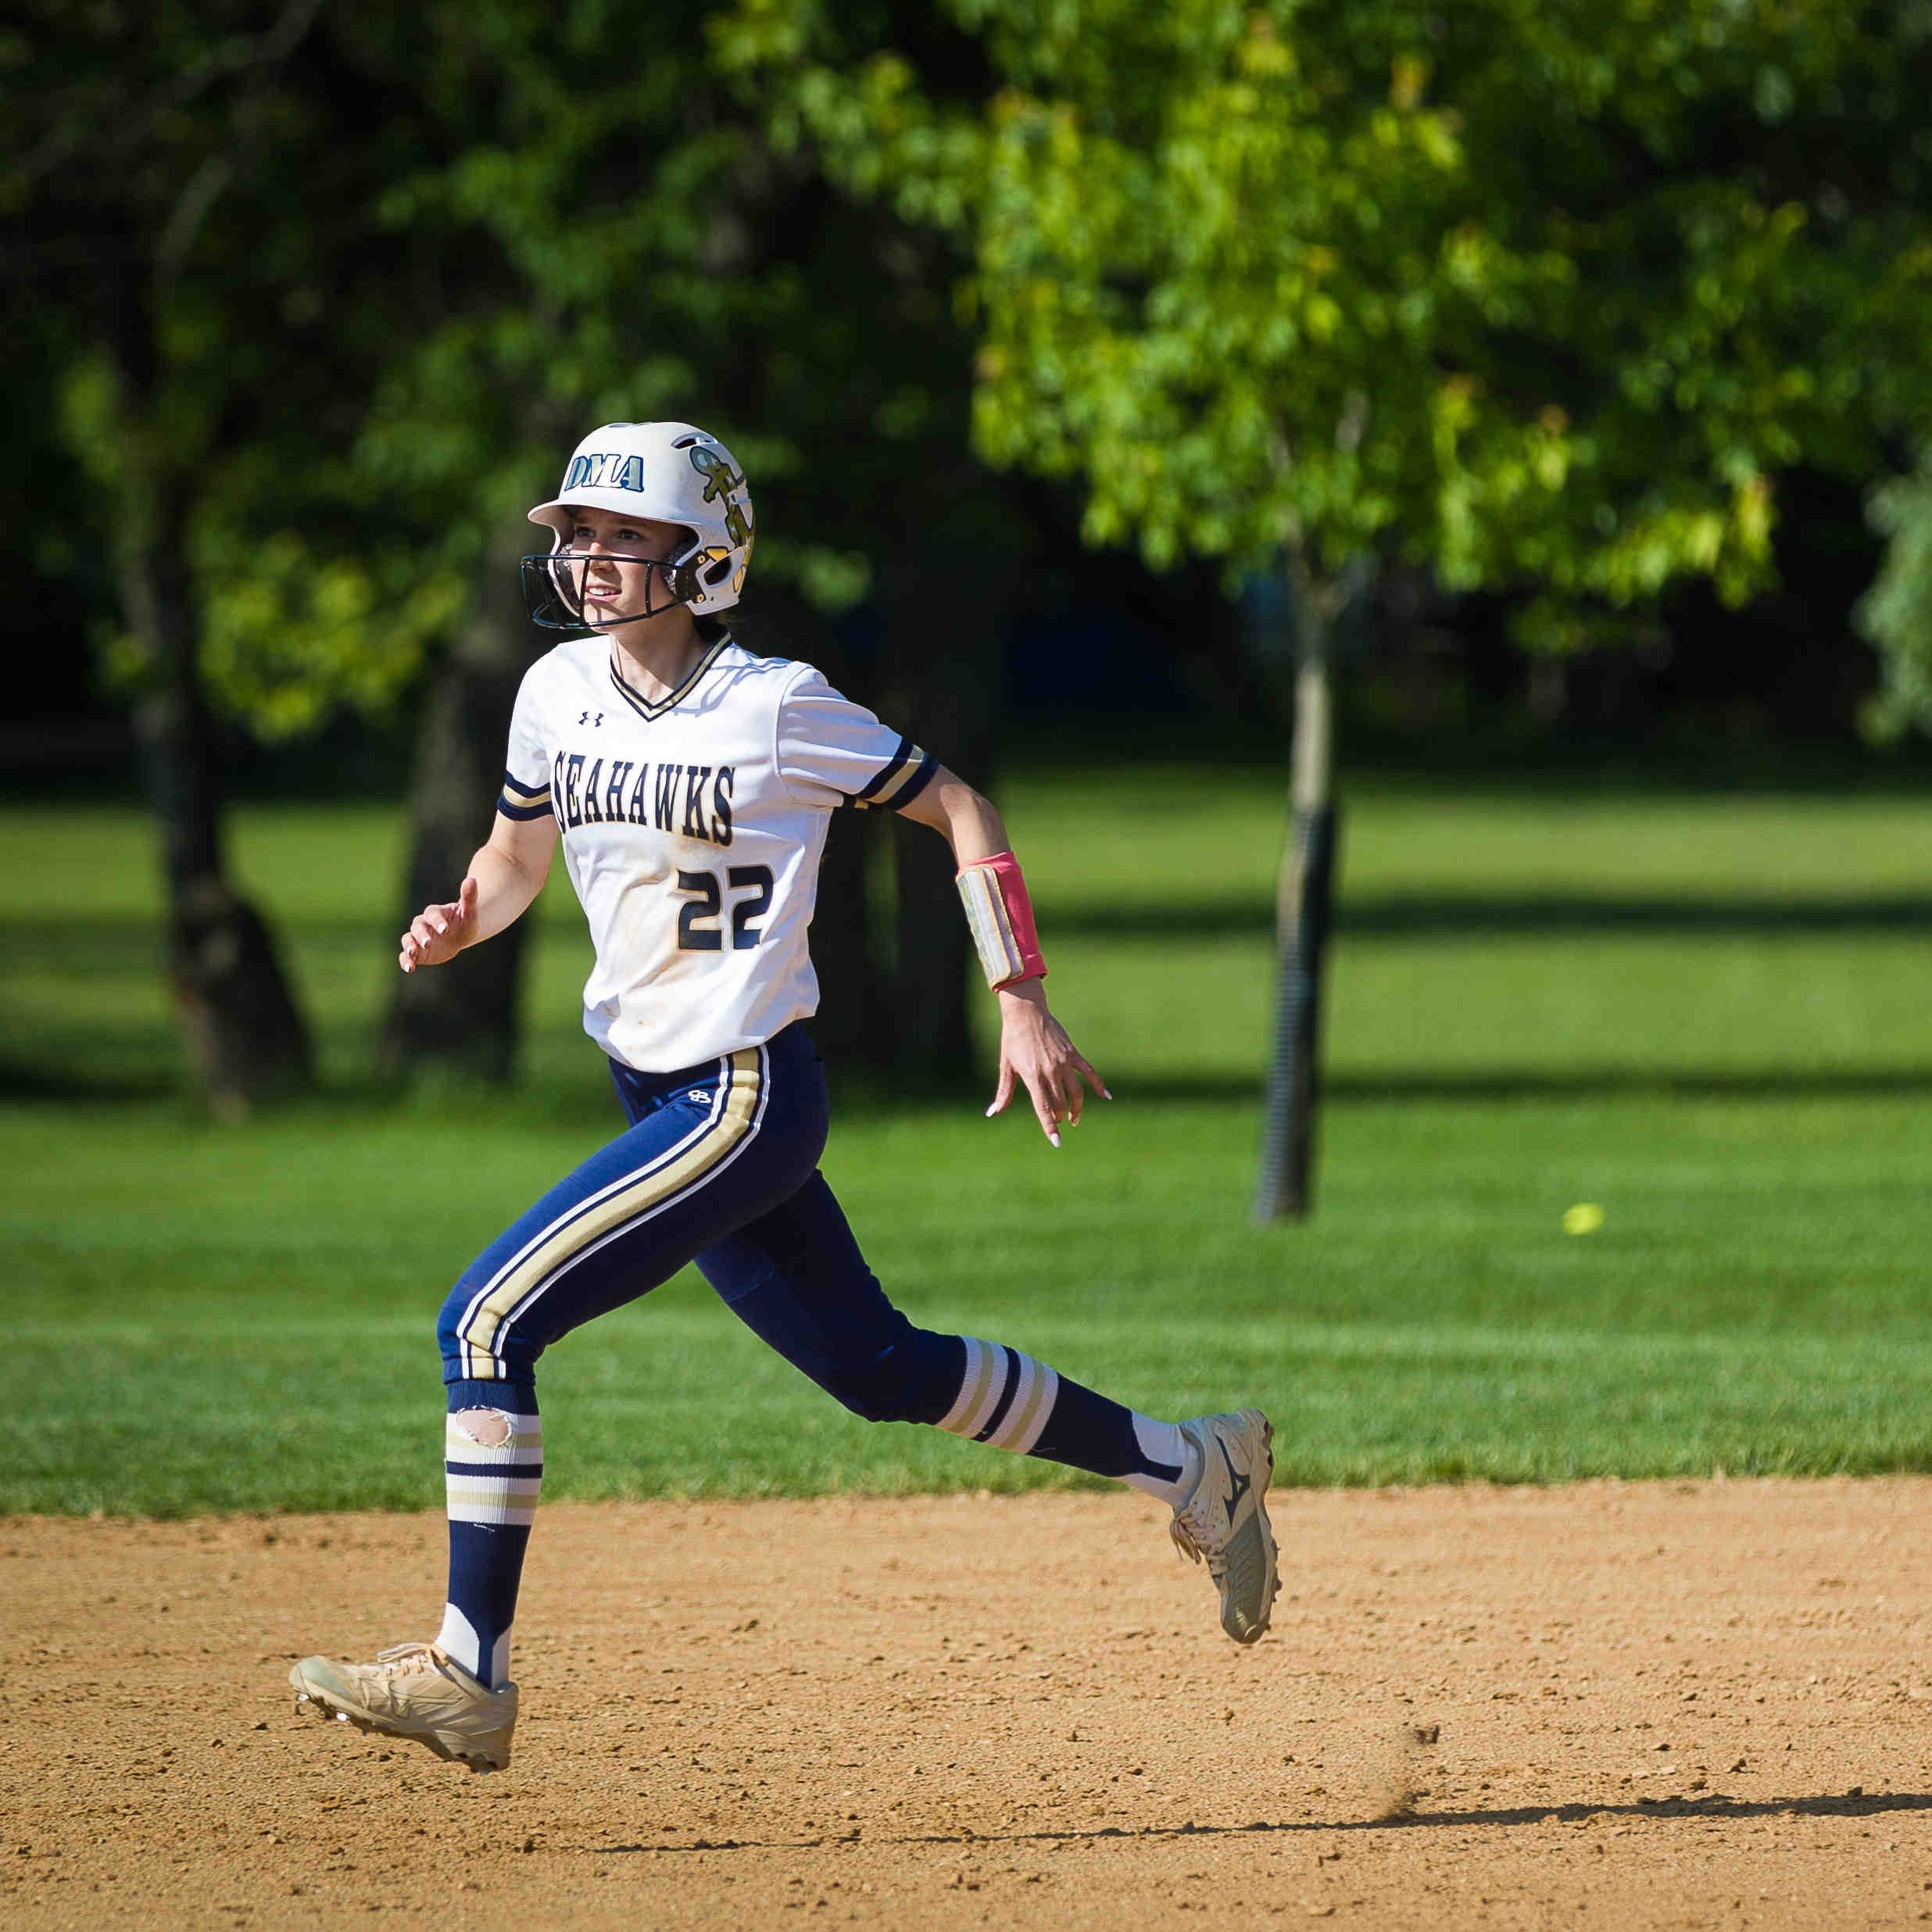 DMA outburst too much for Sussex Central in DIAA Softball Tournament opener